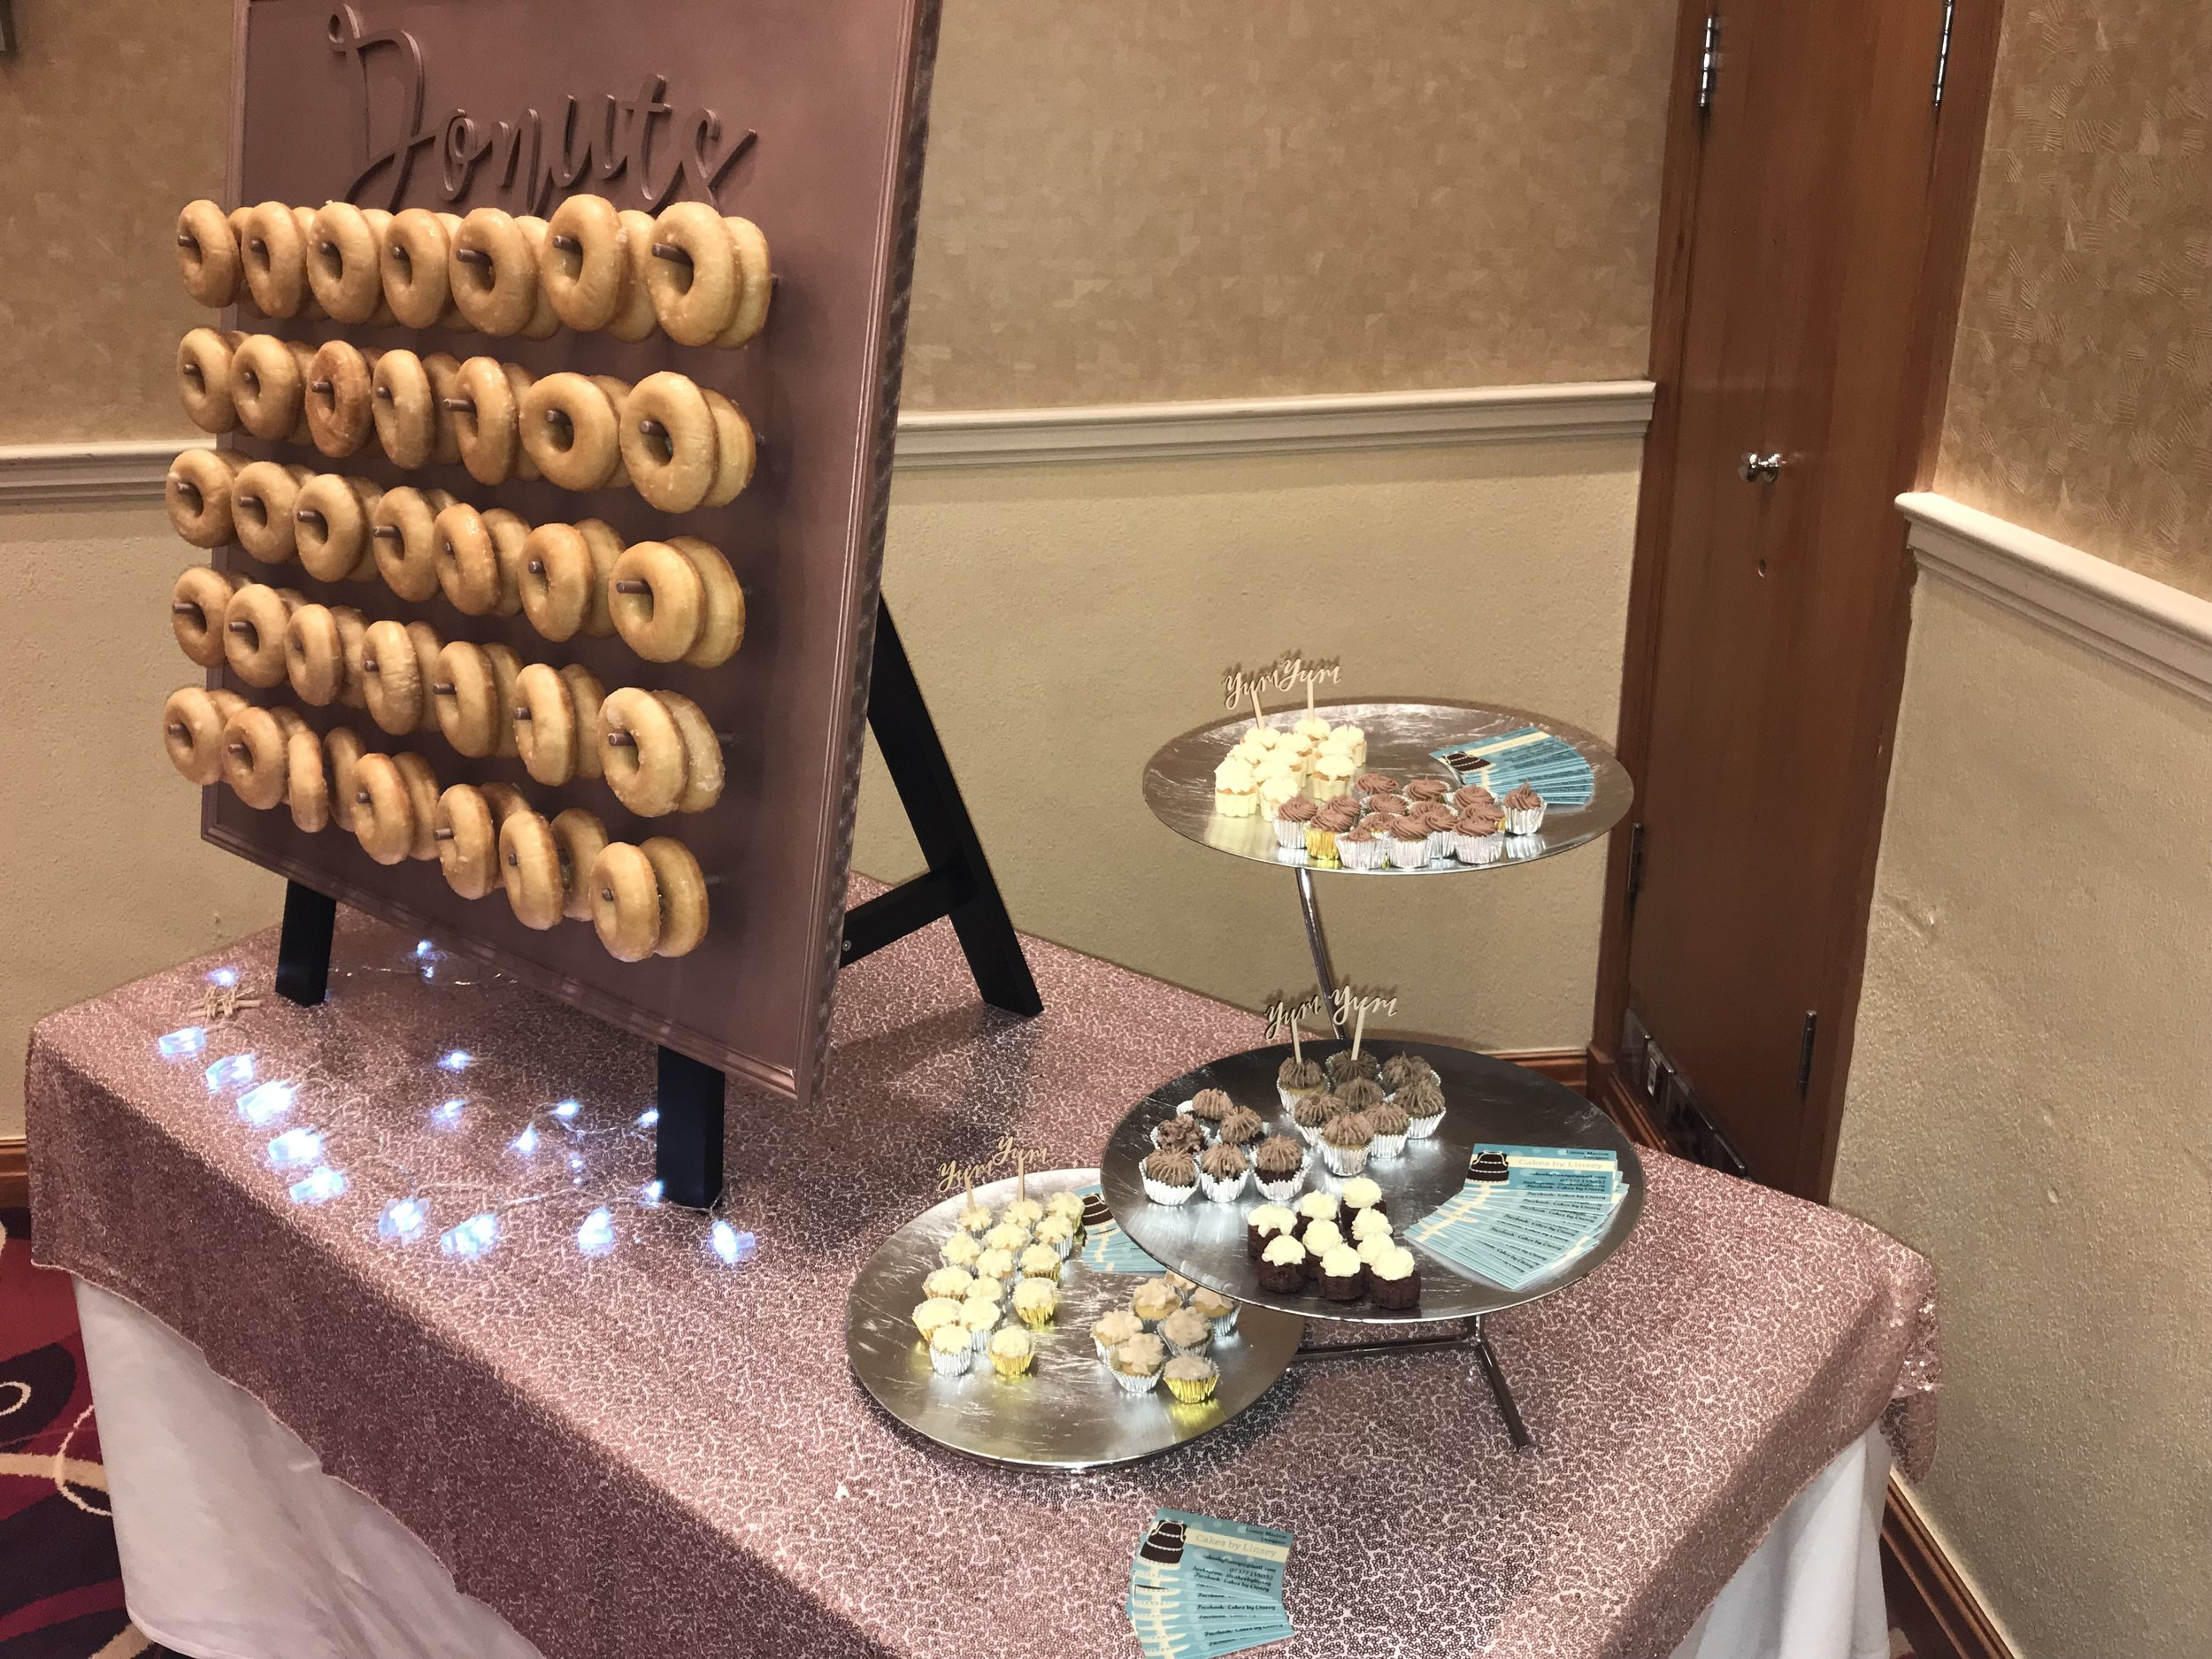 One of our latest pieces, a Donut Wall with the capability of holding 70 Donuts. This particular piece can be customised in any colour or natural wood, with the Donuts sign in any chosen font. It can be floral swagged in the corners to pull your theme together.  This particular piece is £45 to hire the unit or £100 fully loaded with 70 donuts and 10 spares for top ups (for basic glazed donuts.  There are more donut options that can come at a higher cost.